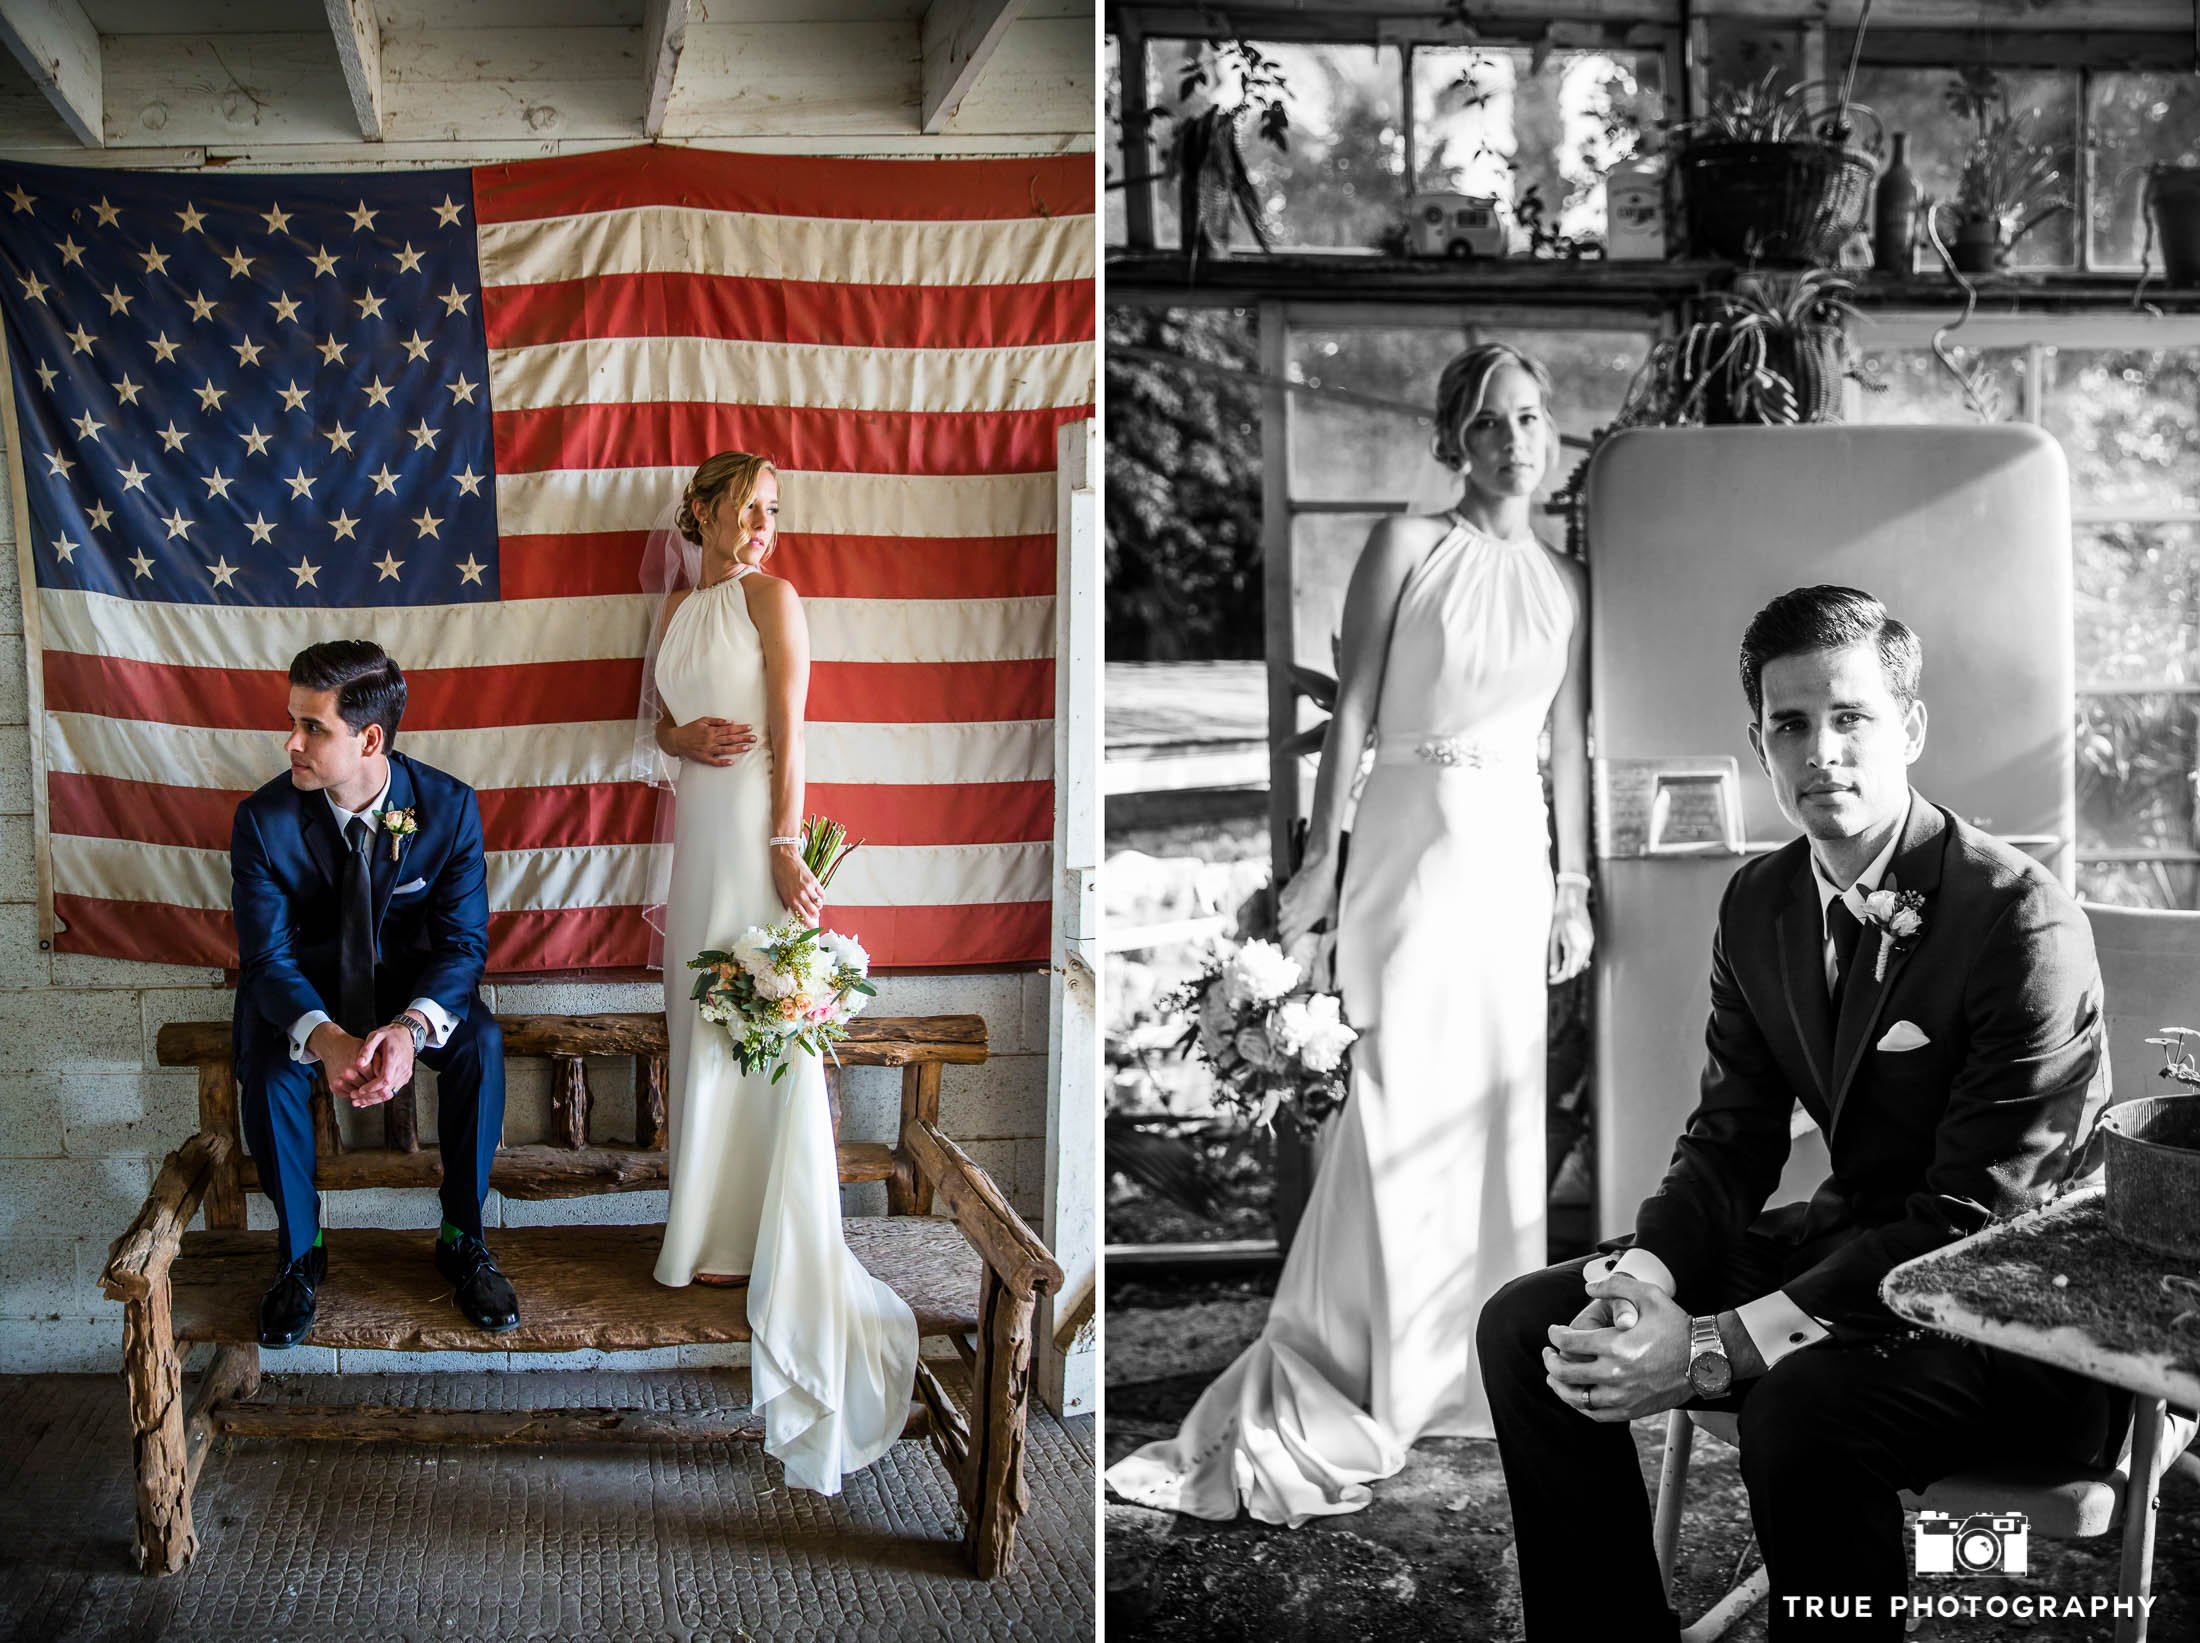 Modern Bohemian Bride and Groom pose for photos at rustic ranch